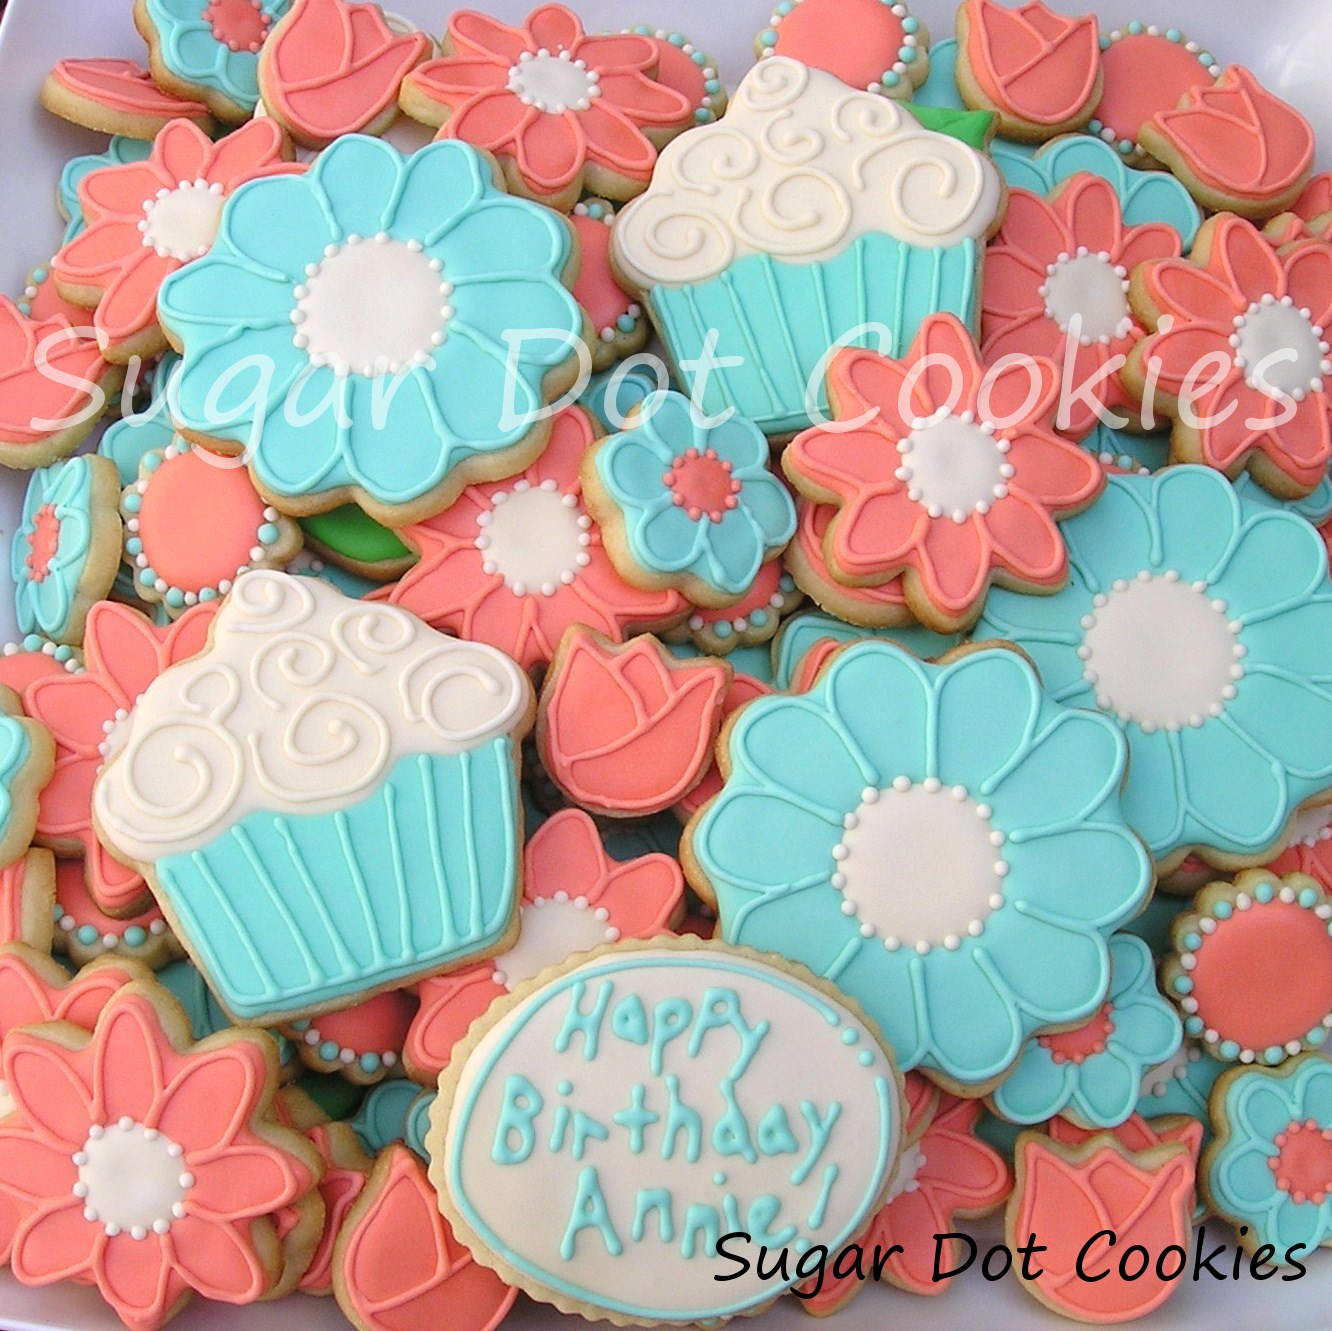 Sugar Dot Cookies How to Make Flower Centers Royal Icing Sugar